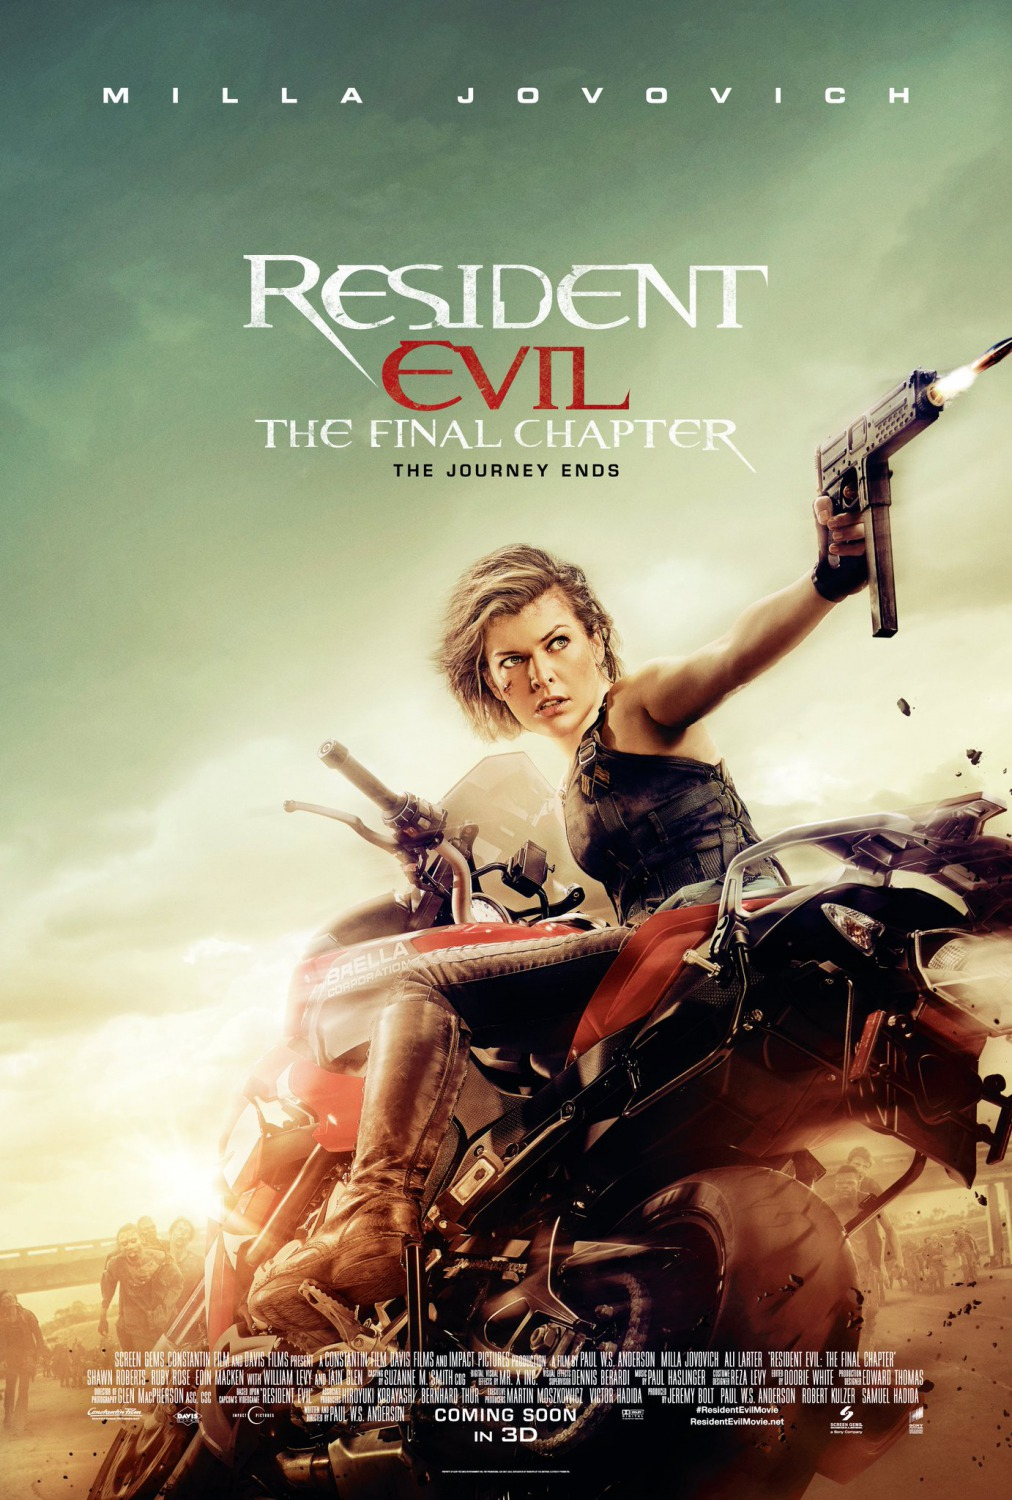 JUEVES 27 DE ABRIL, 18:00 HRS. RESIDENT EVIL: CAPÍTULO FINAL